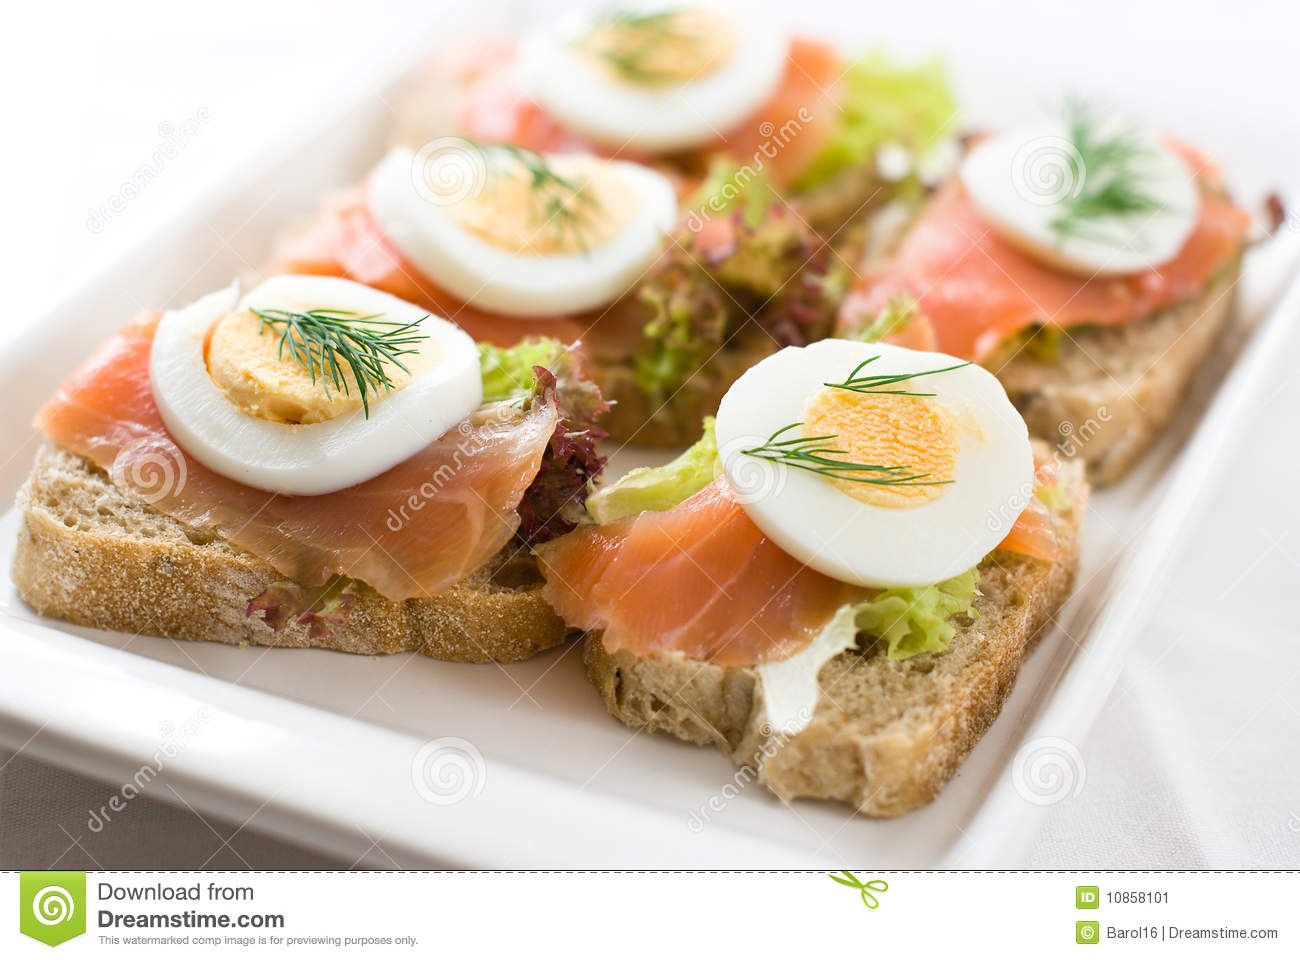 Canapes With Smoked Salmon Stock Image - Image: 10858101